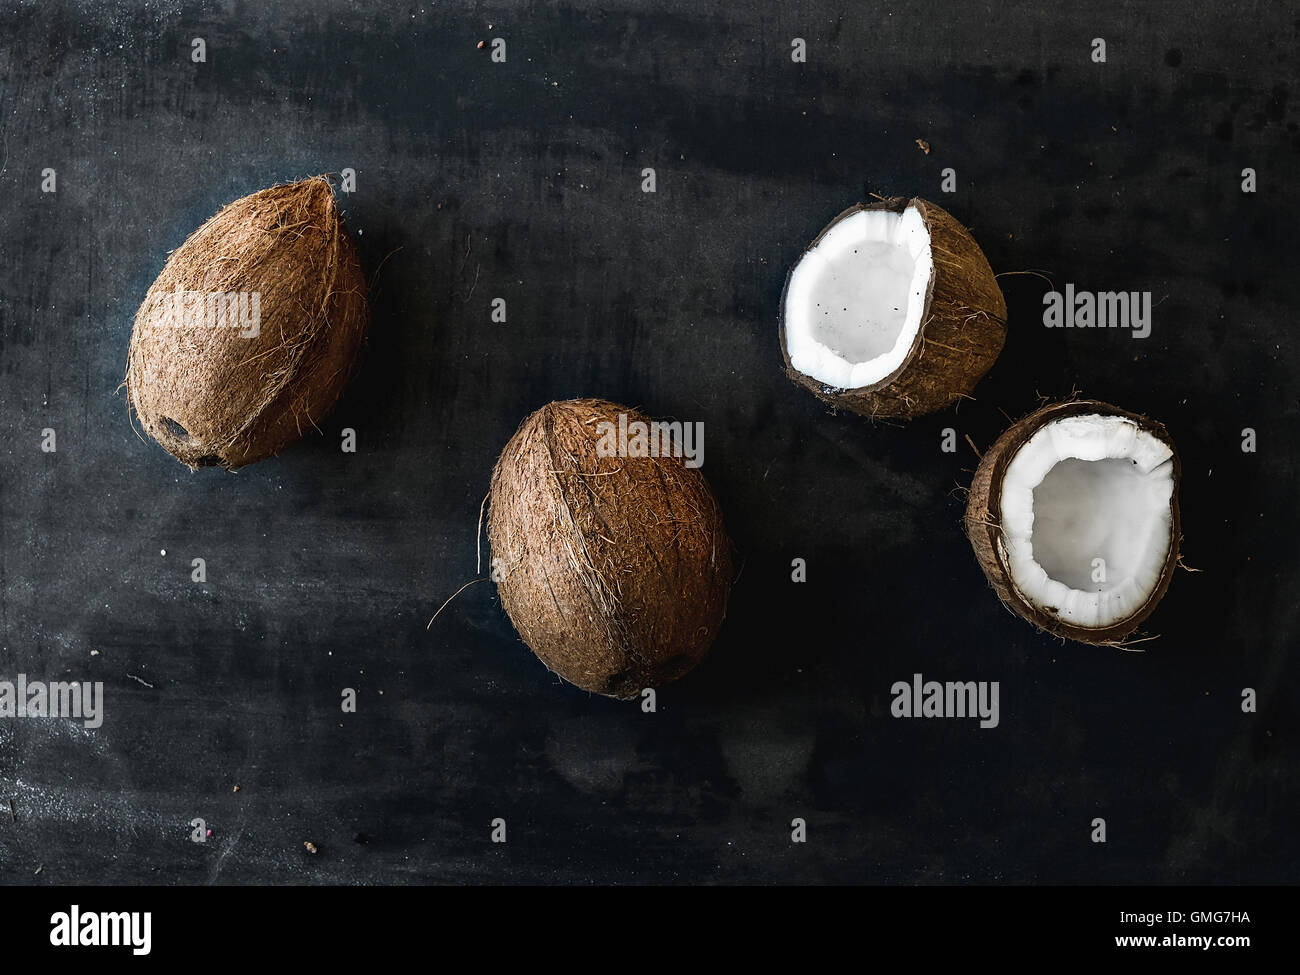 Whole and broken coconuts over dark grunge background - Stock Image